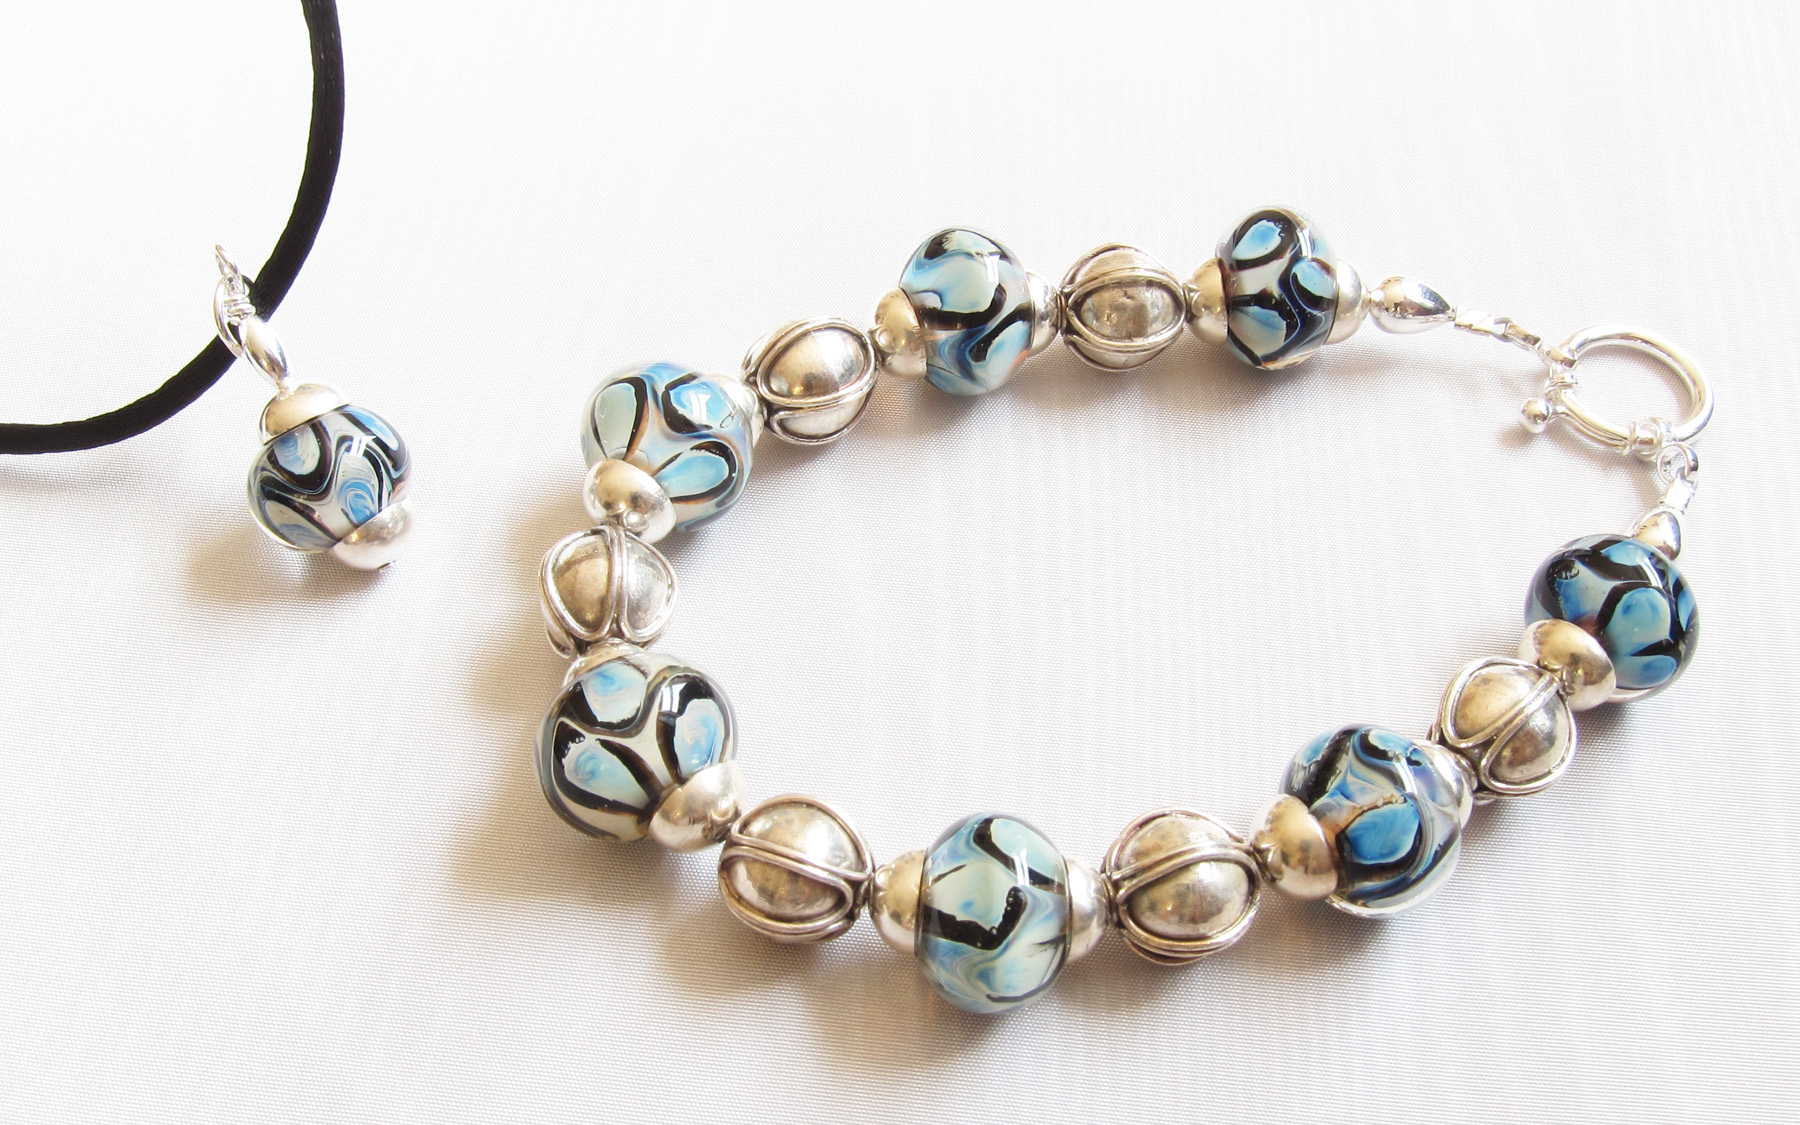 Aura Blue Beige Black Dots Drop on Satin Cord with Matching Bracelet